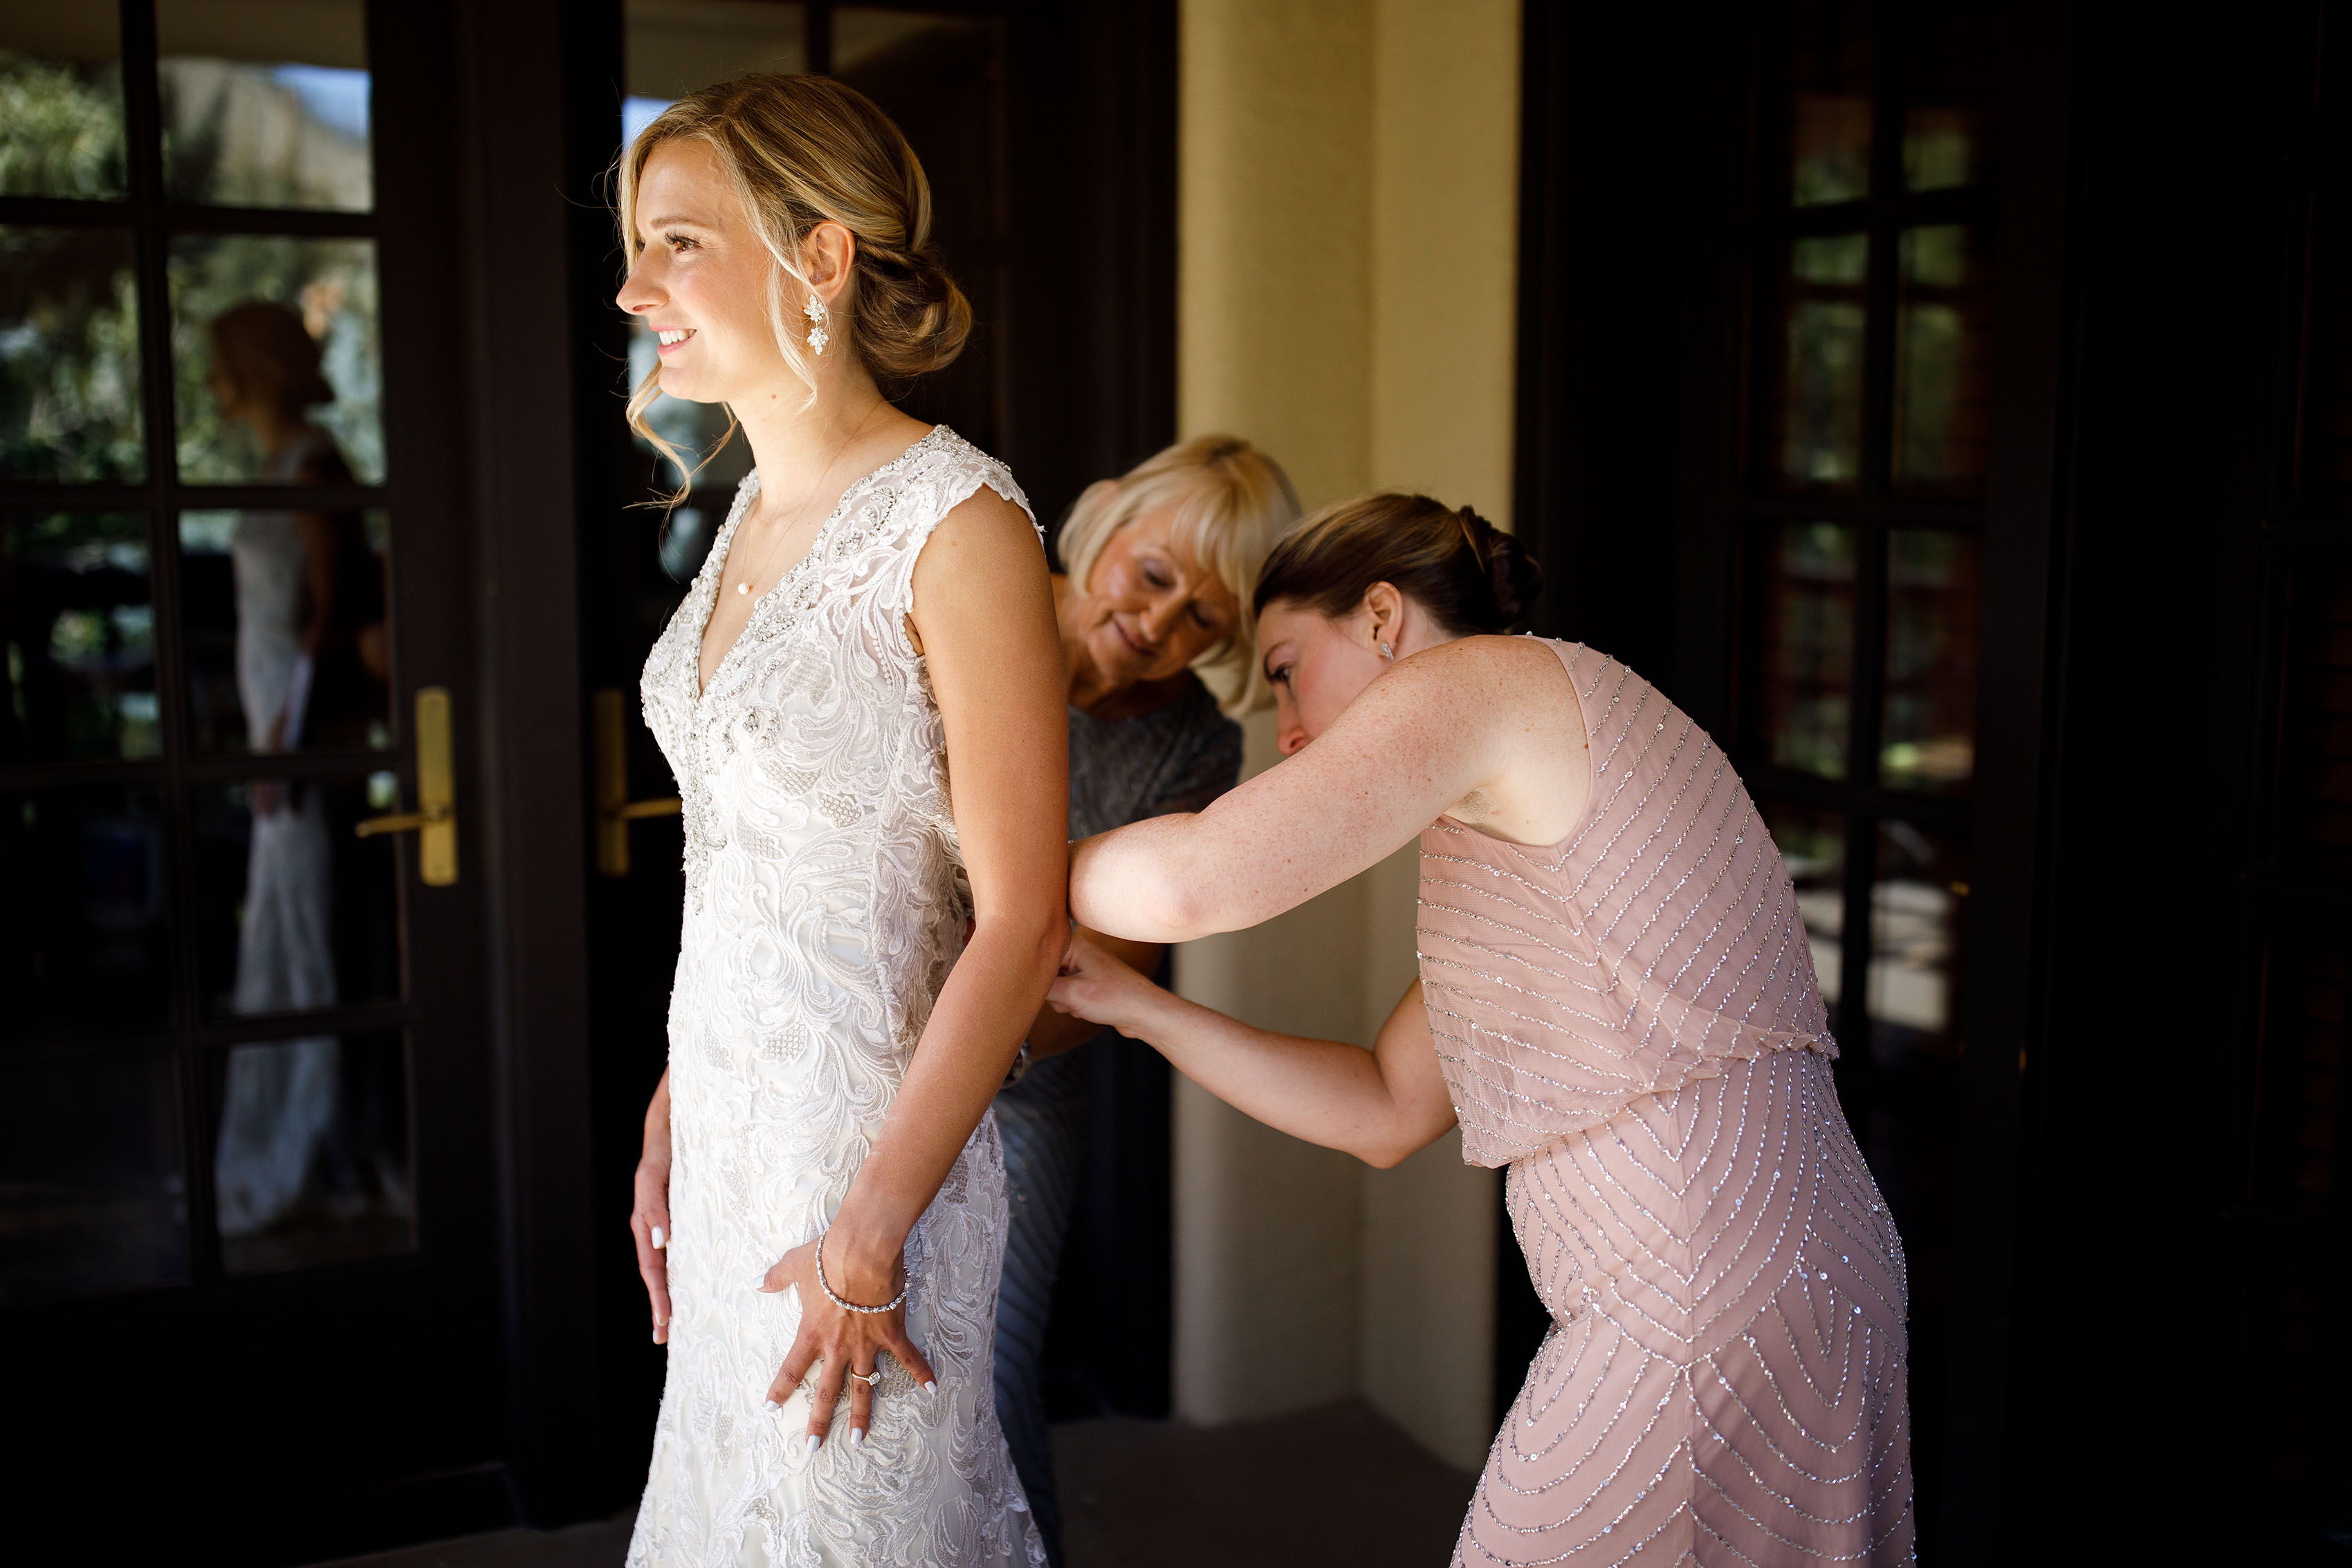 Melissa gets help buttoning her wedding dress